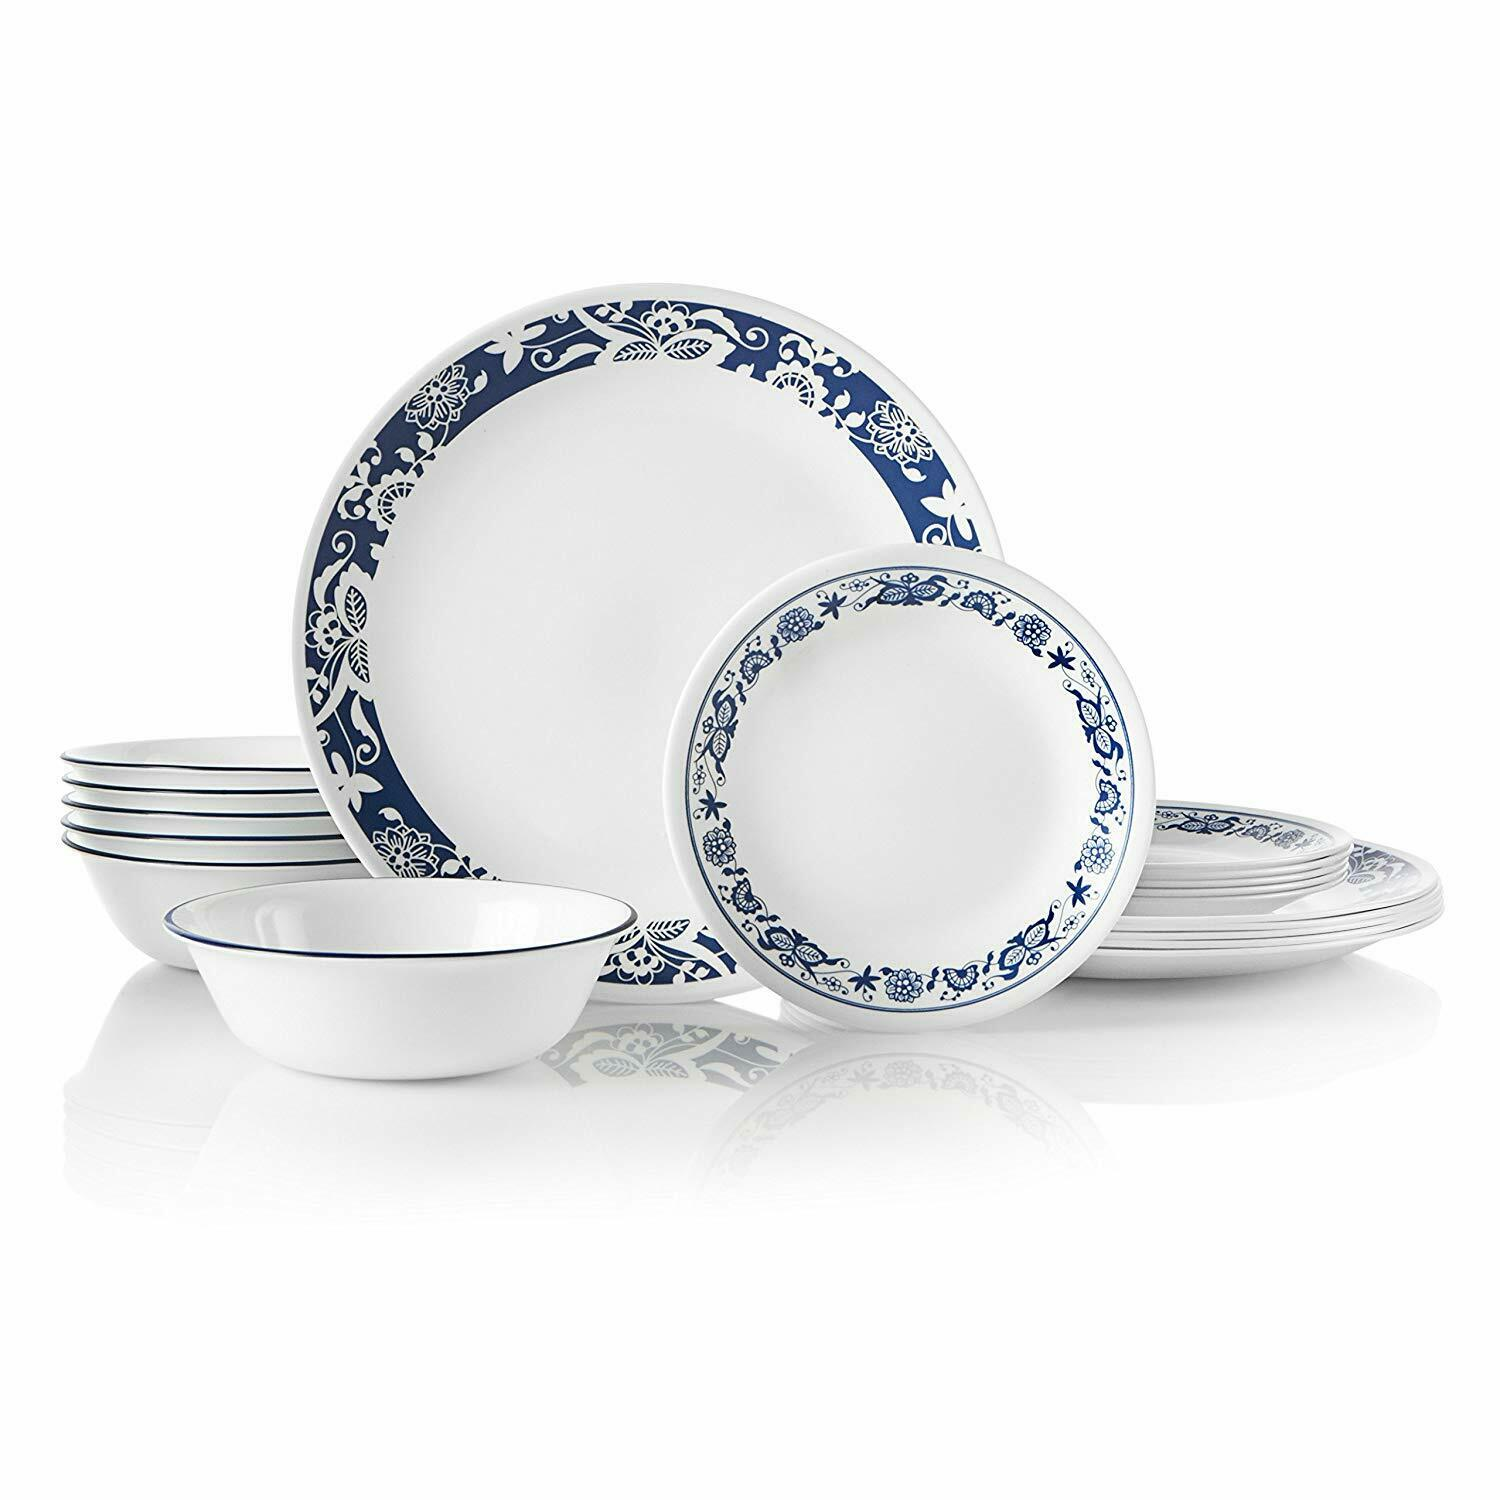 New Corelle 1134333 18 Piece Dinnerware Dining Set, True Blu